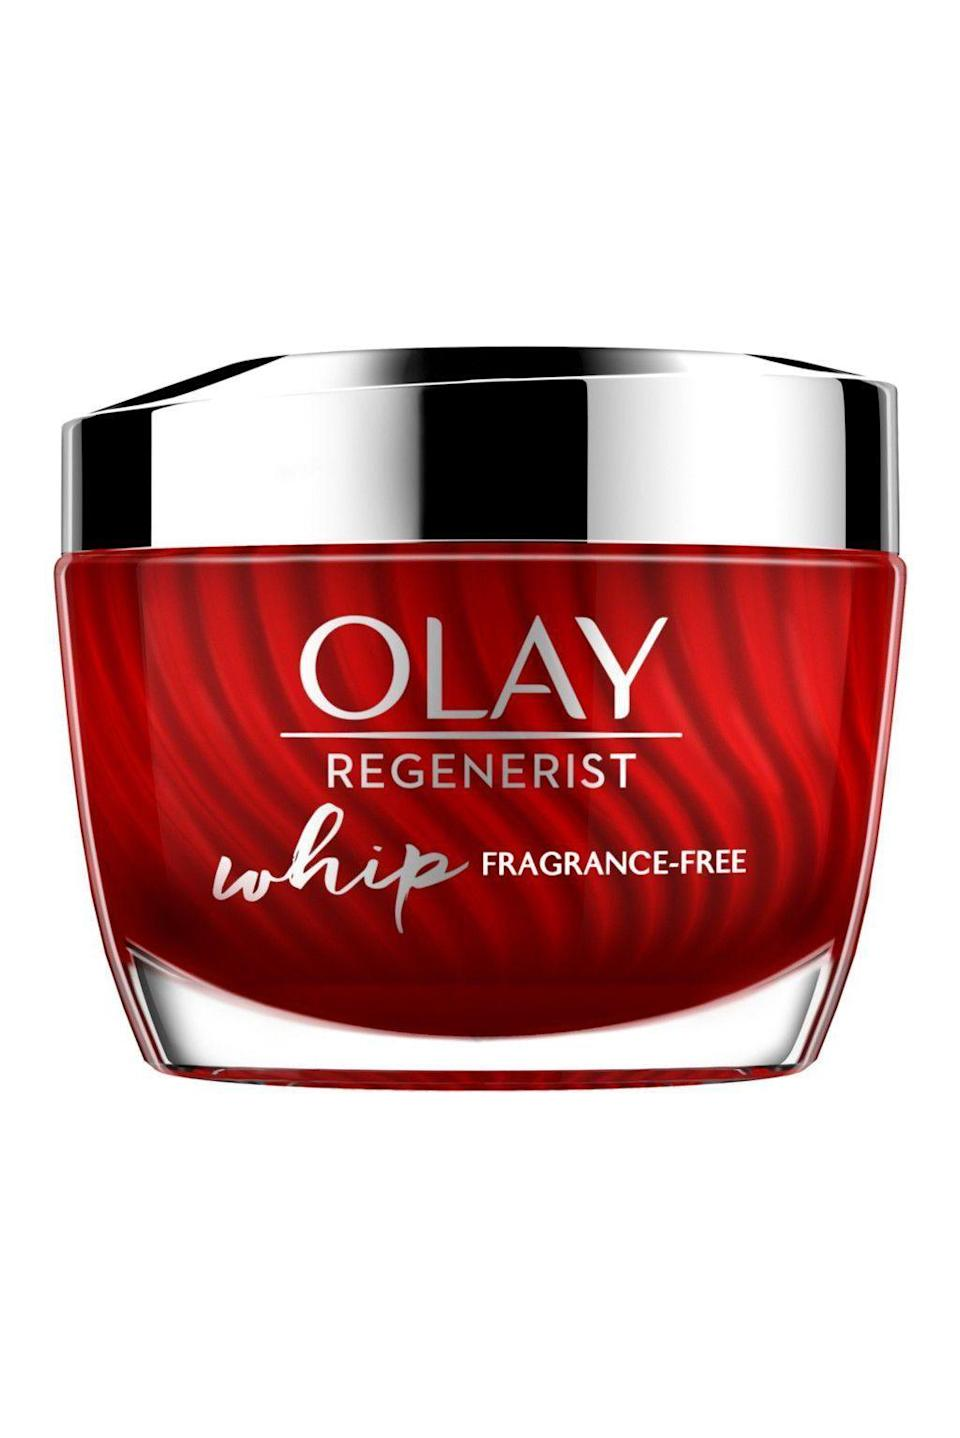 """<p><strong>Olay</strong></p><p>amazon.com</p><p><strong>$19.98</strong></p><p><a href=""""https://www.amazon.com/dp/B07GBPMMGP?tag=syn-yahoo-20&ascsubtag=%5Bartid%7C10058.g.34015100%5Bsrc%7Cyahoo-us"""" rel=""""nofollow noopener"""" target=""""_blank"""" data-ylk=""""slk:SHOP IT"""" class=""""link rapid-noclick-resp"""">SHOP IT</a></p><p>Olay has been dominating the anti-aging market for years, and there's a reason for that. This whipped cream is fragrance-free for sensitive-skin consumers, plus it's lightweight and never feels greasy.</p>"""